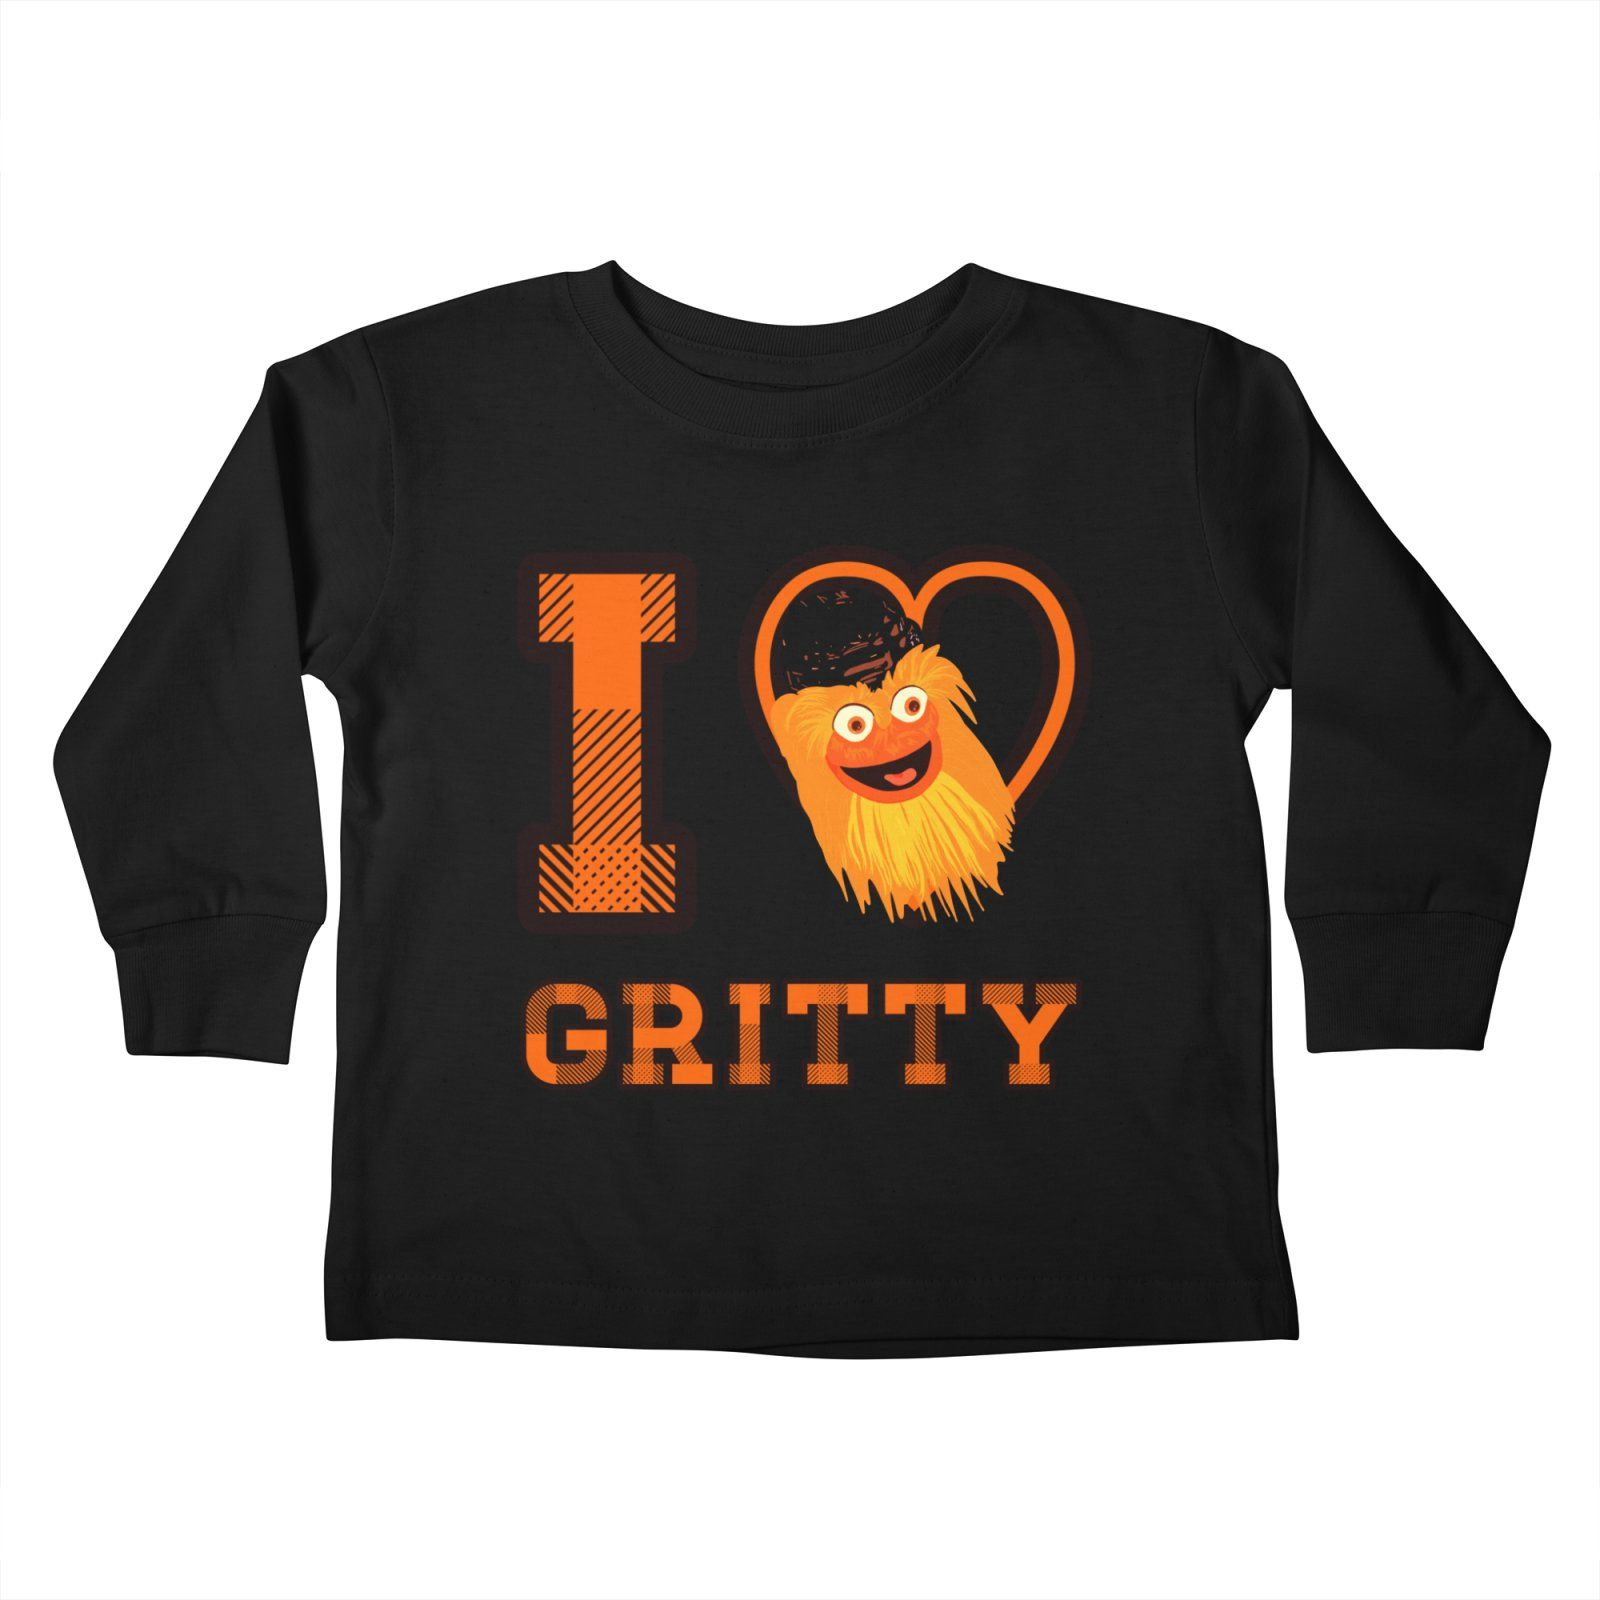 I love Gritty mascot hockey Philadelphia Kids Toddler Longsleeve T-Shirt by  Mimie s Artist Shop  Gritty  Philadelphia  flyers  tshirt a1bcee584